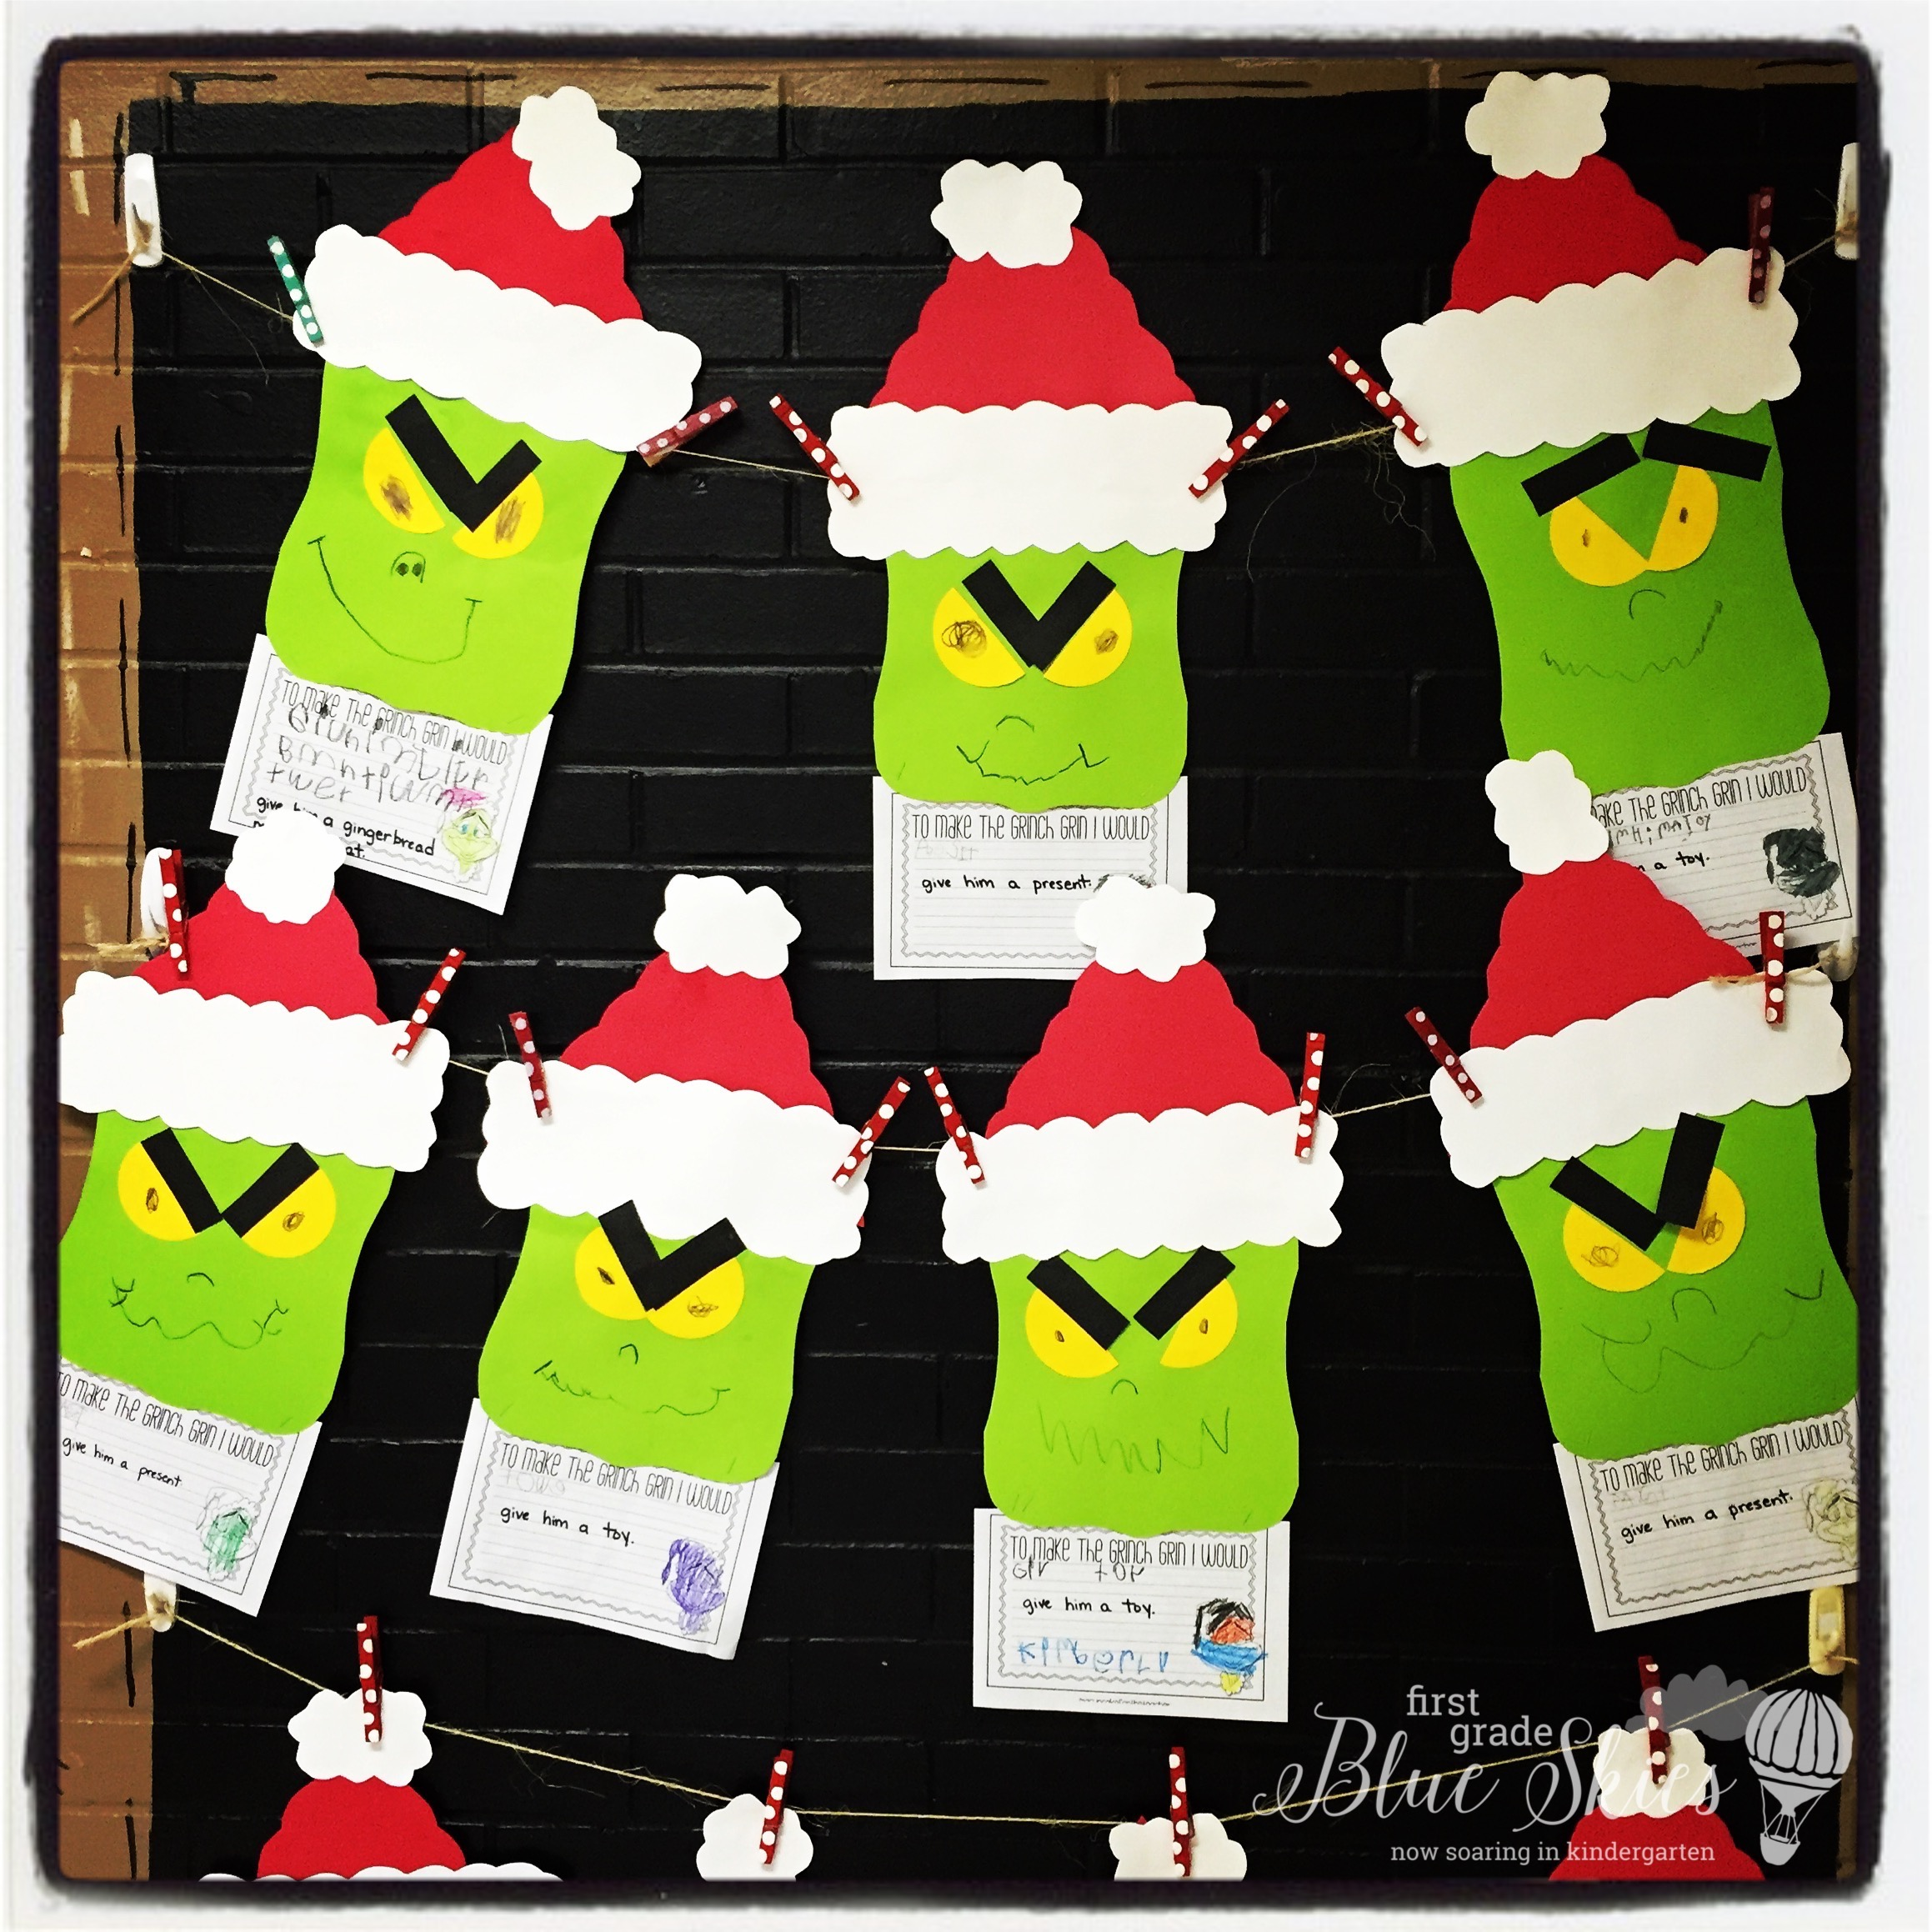 The Creative Colorful Classroom Grinch Day Plans!